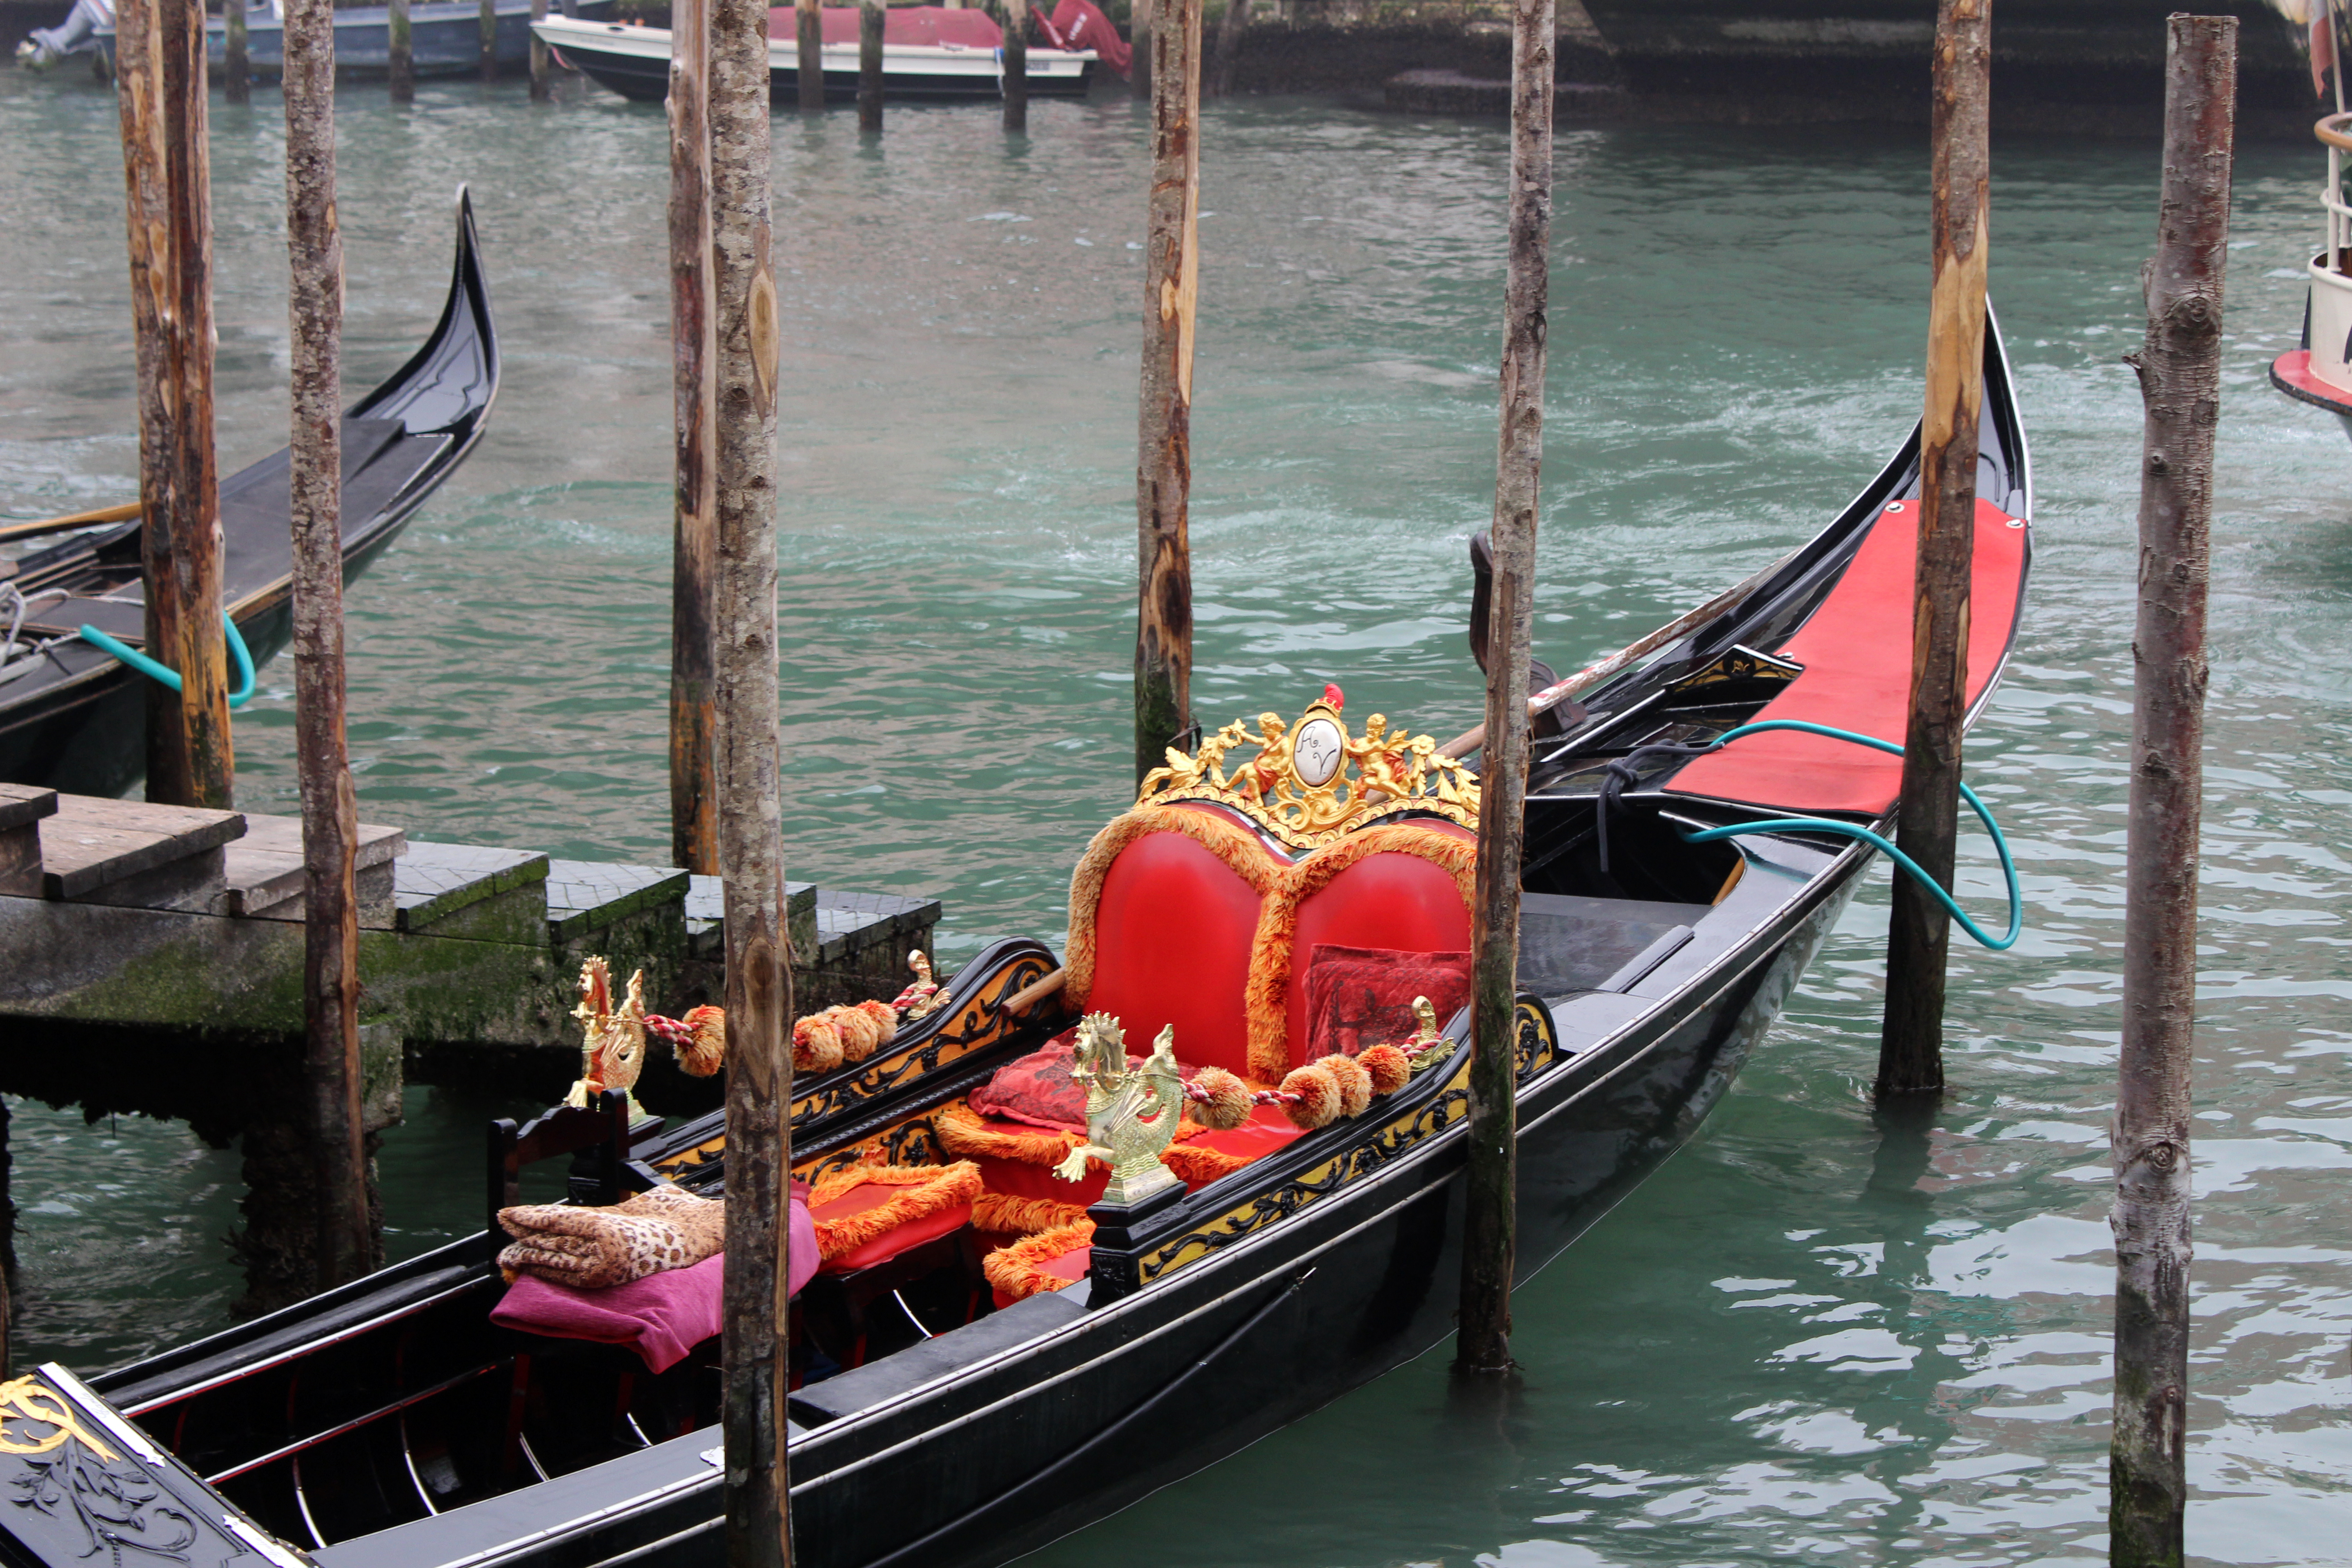 Gondola on the Grand Canal in Venice Italy